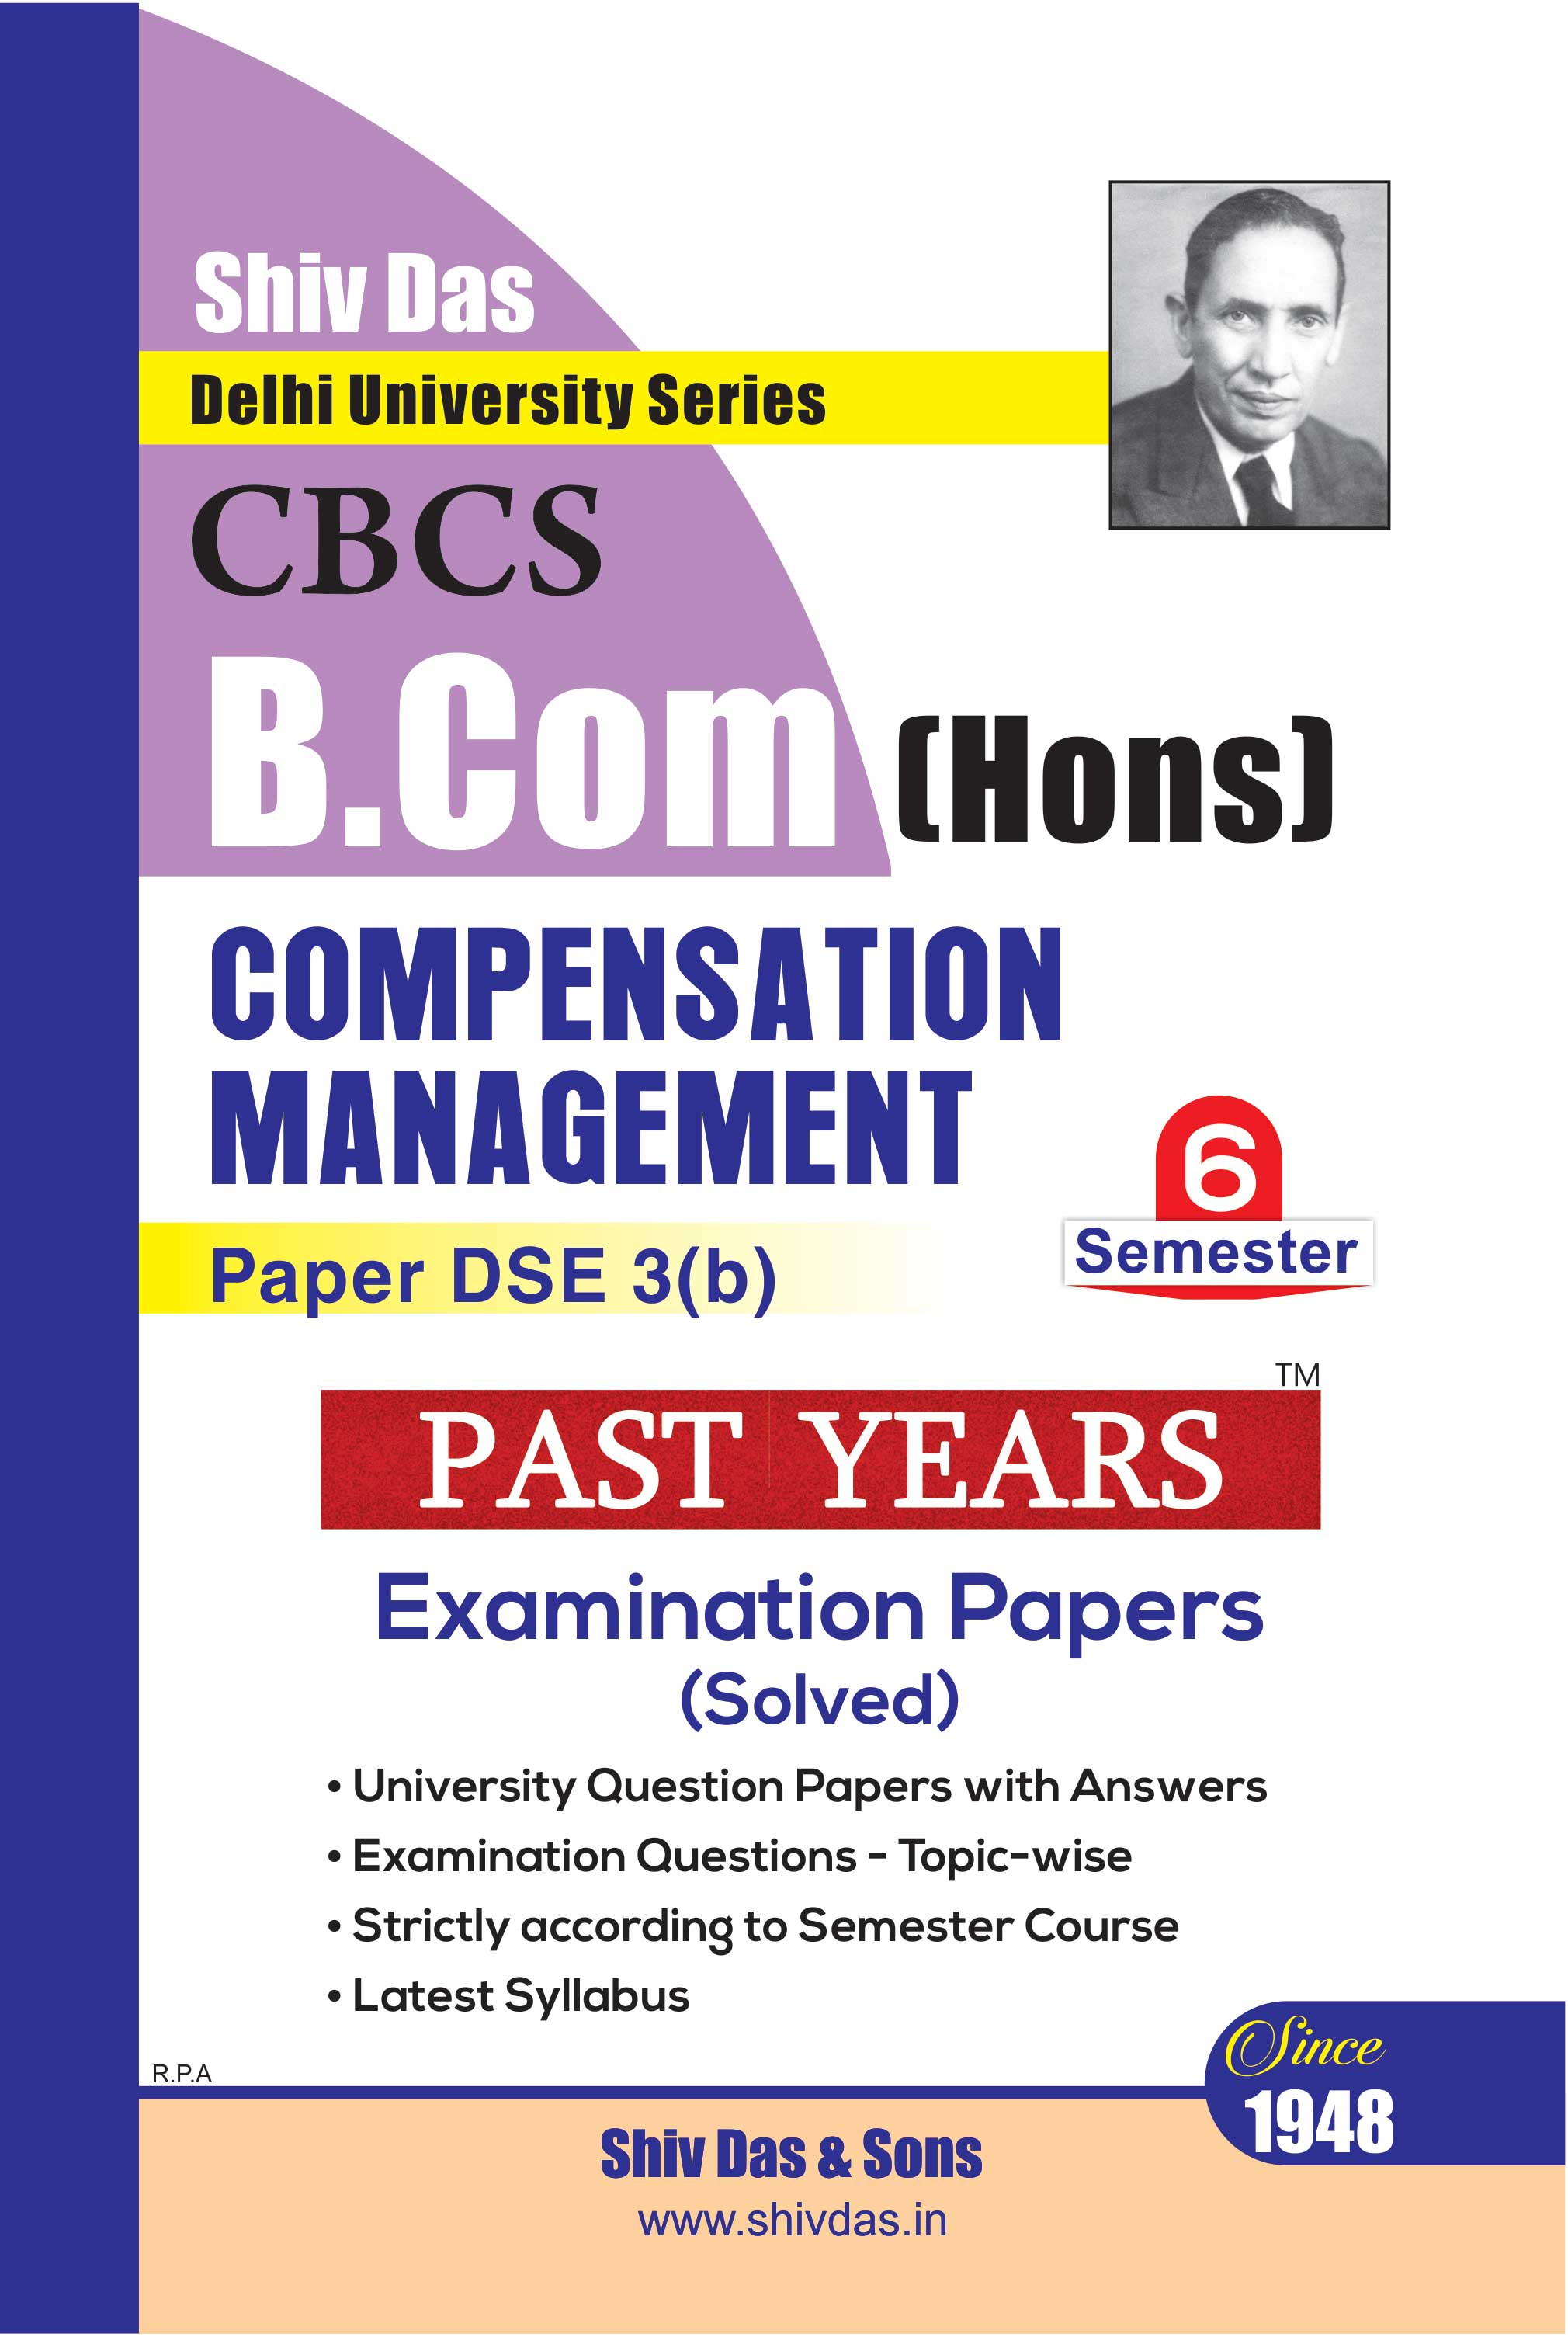 Compensation Management for B.Com Hons Semester 6 for Delhi University by Shiv Das